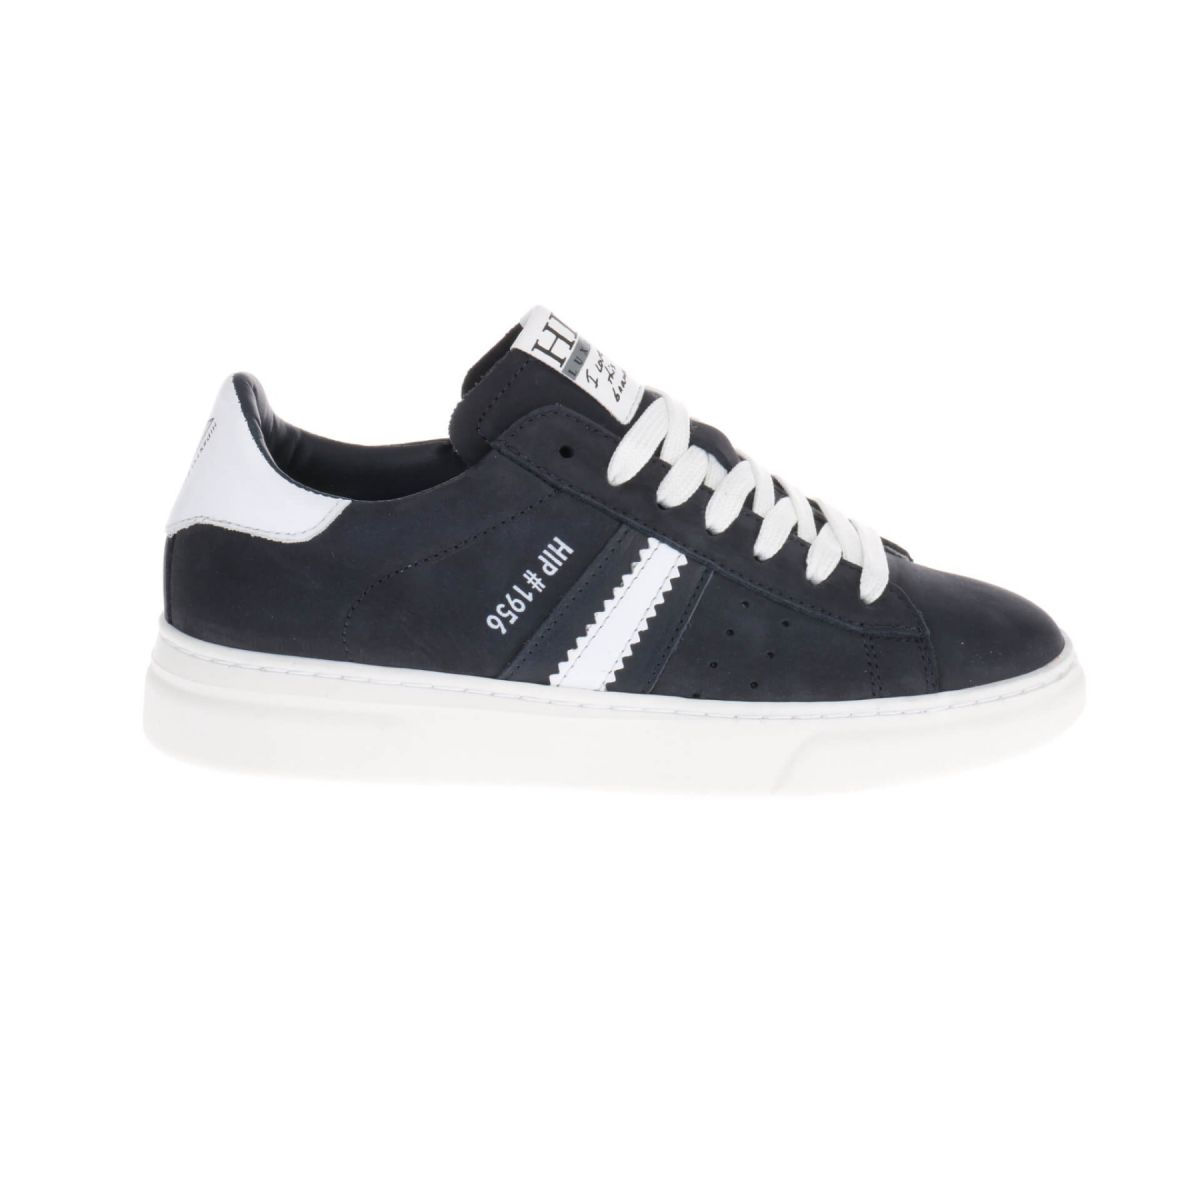 HIP H1272 Sneakers Blauw Wit